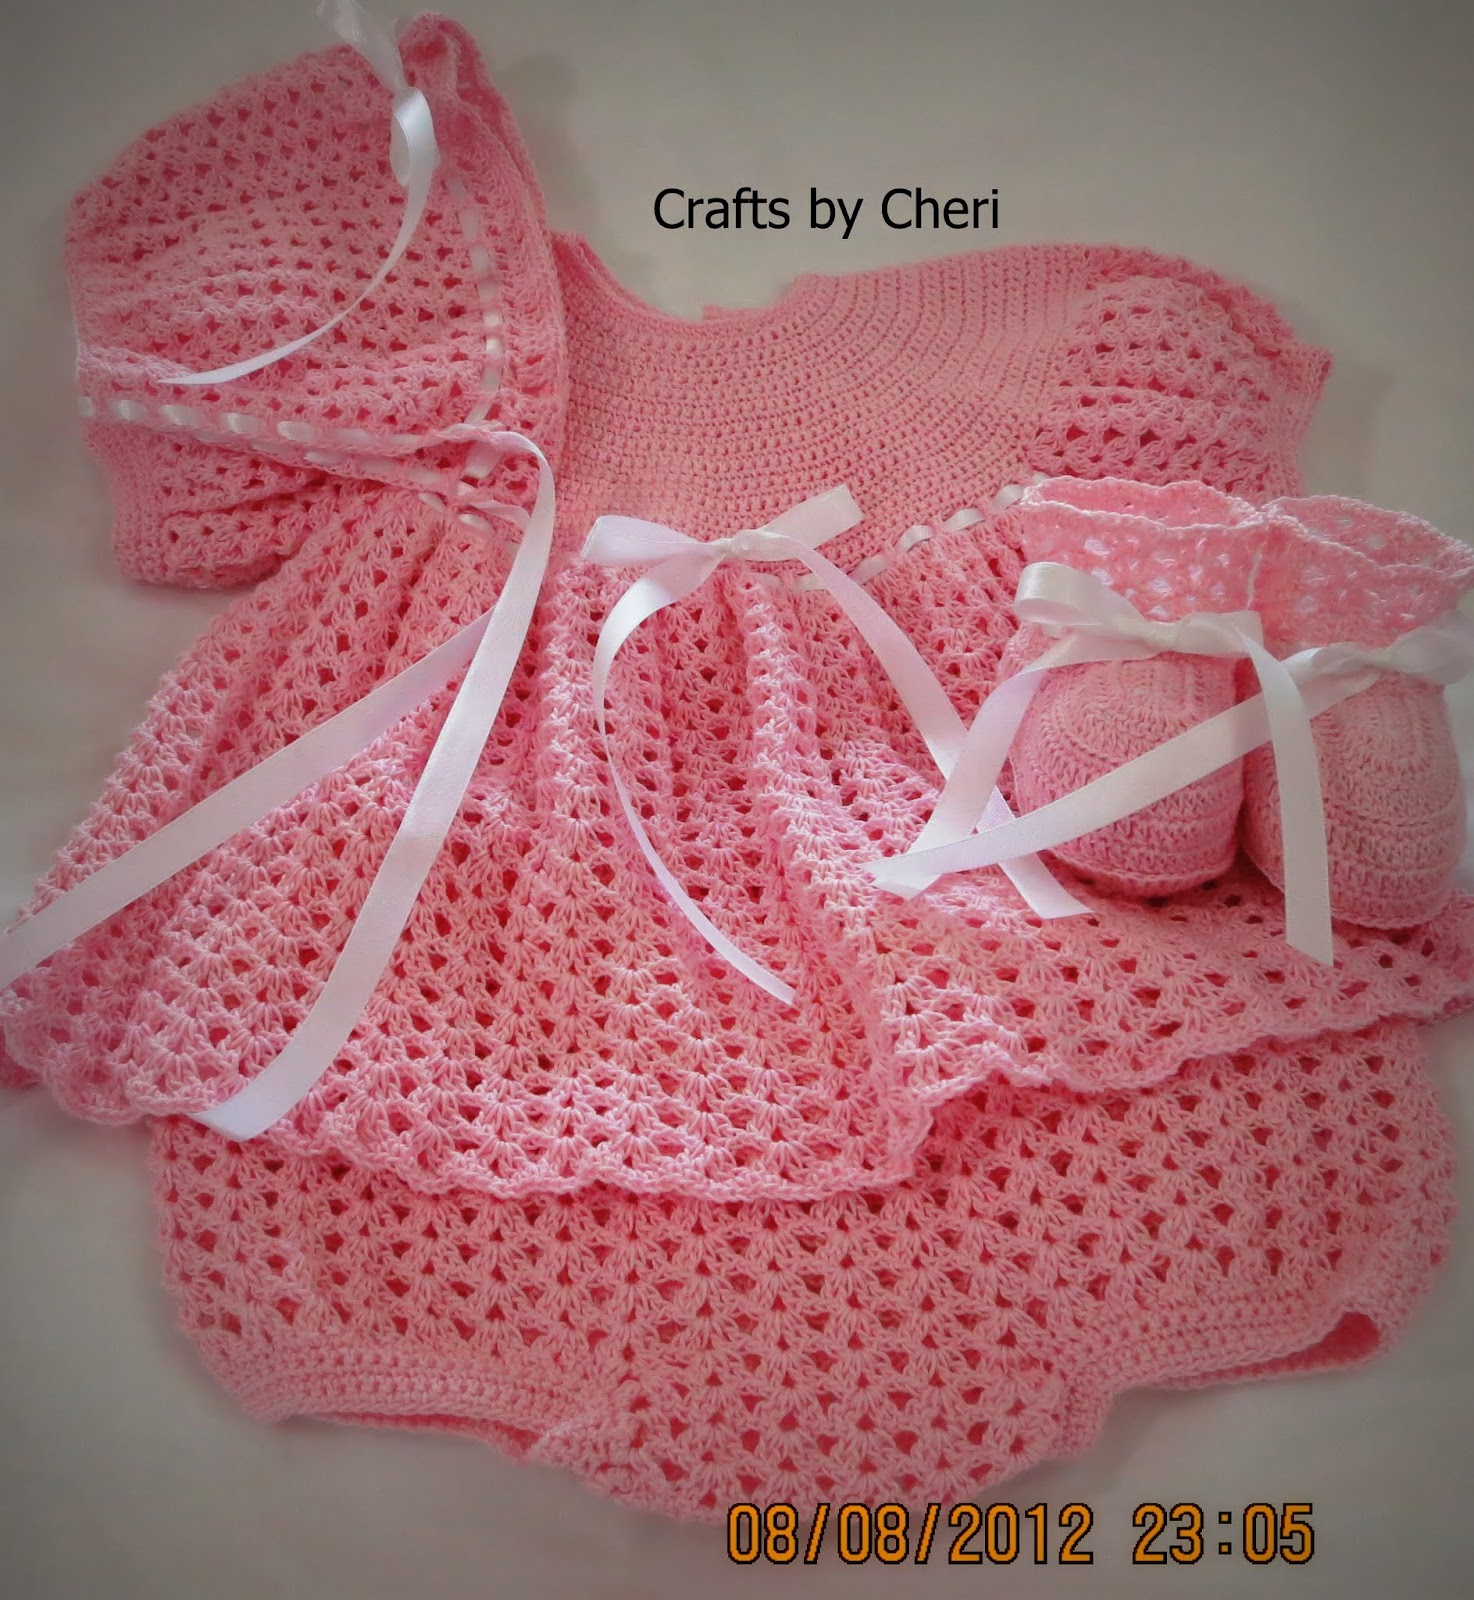 Crochet Baby Outfit Pattern : Cheris Crochet Baby or reborn baby doll clothing or ...